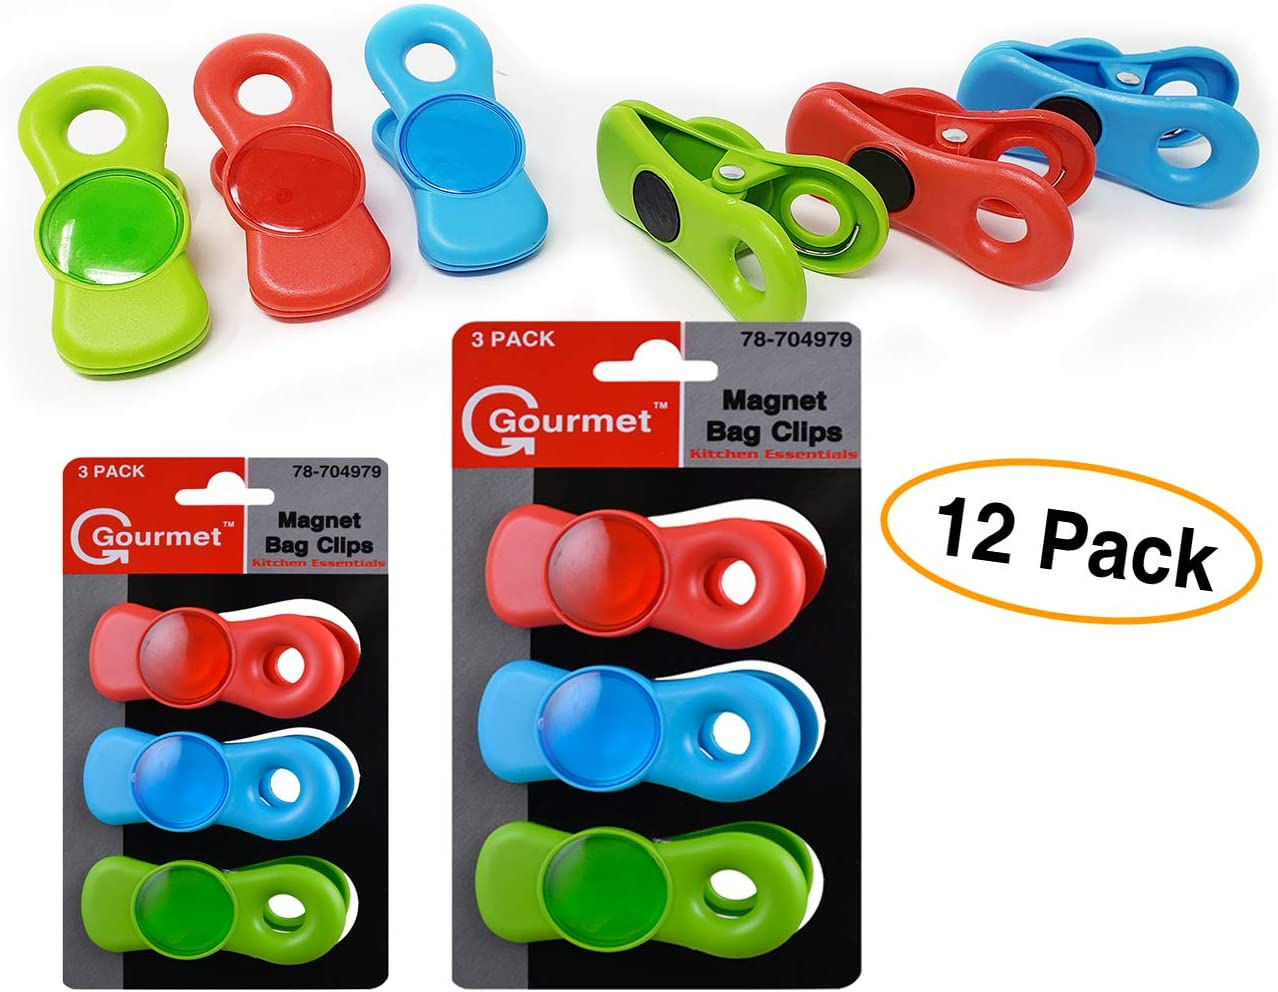 Grips Magnetic Clips All-Purpose (12 Pack) Fridge Magnets, Home, School Classroom and Office Magnets, Bag Clips & Refrigerator Dry Erase Board